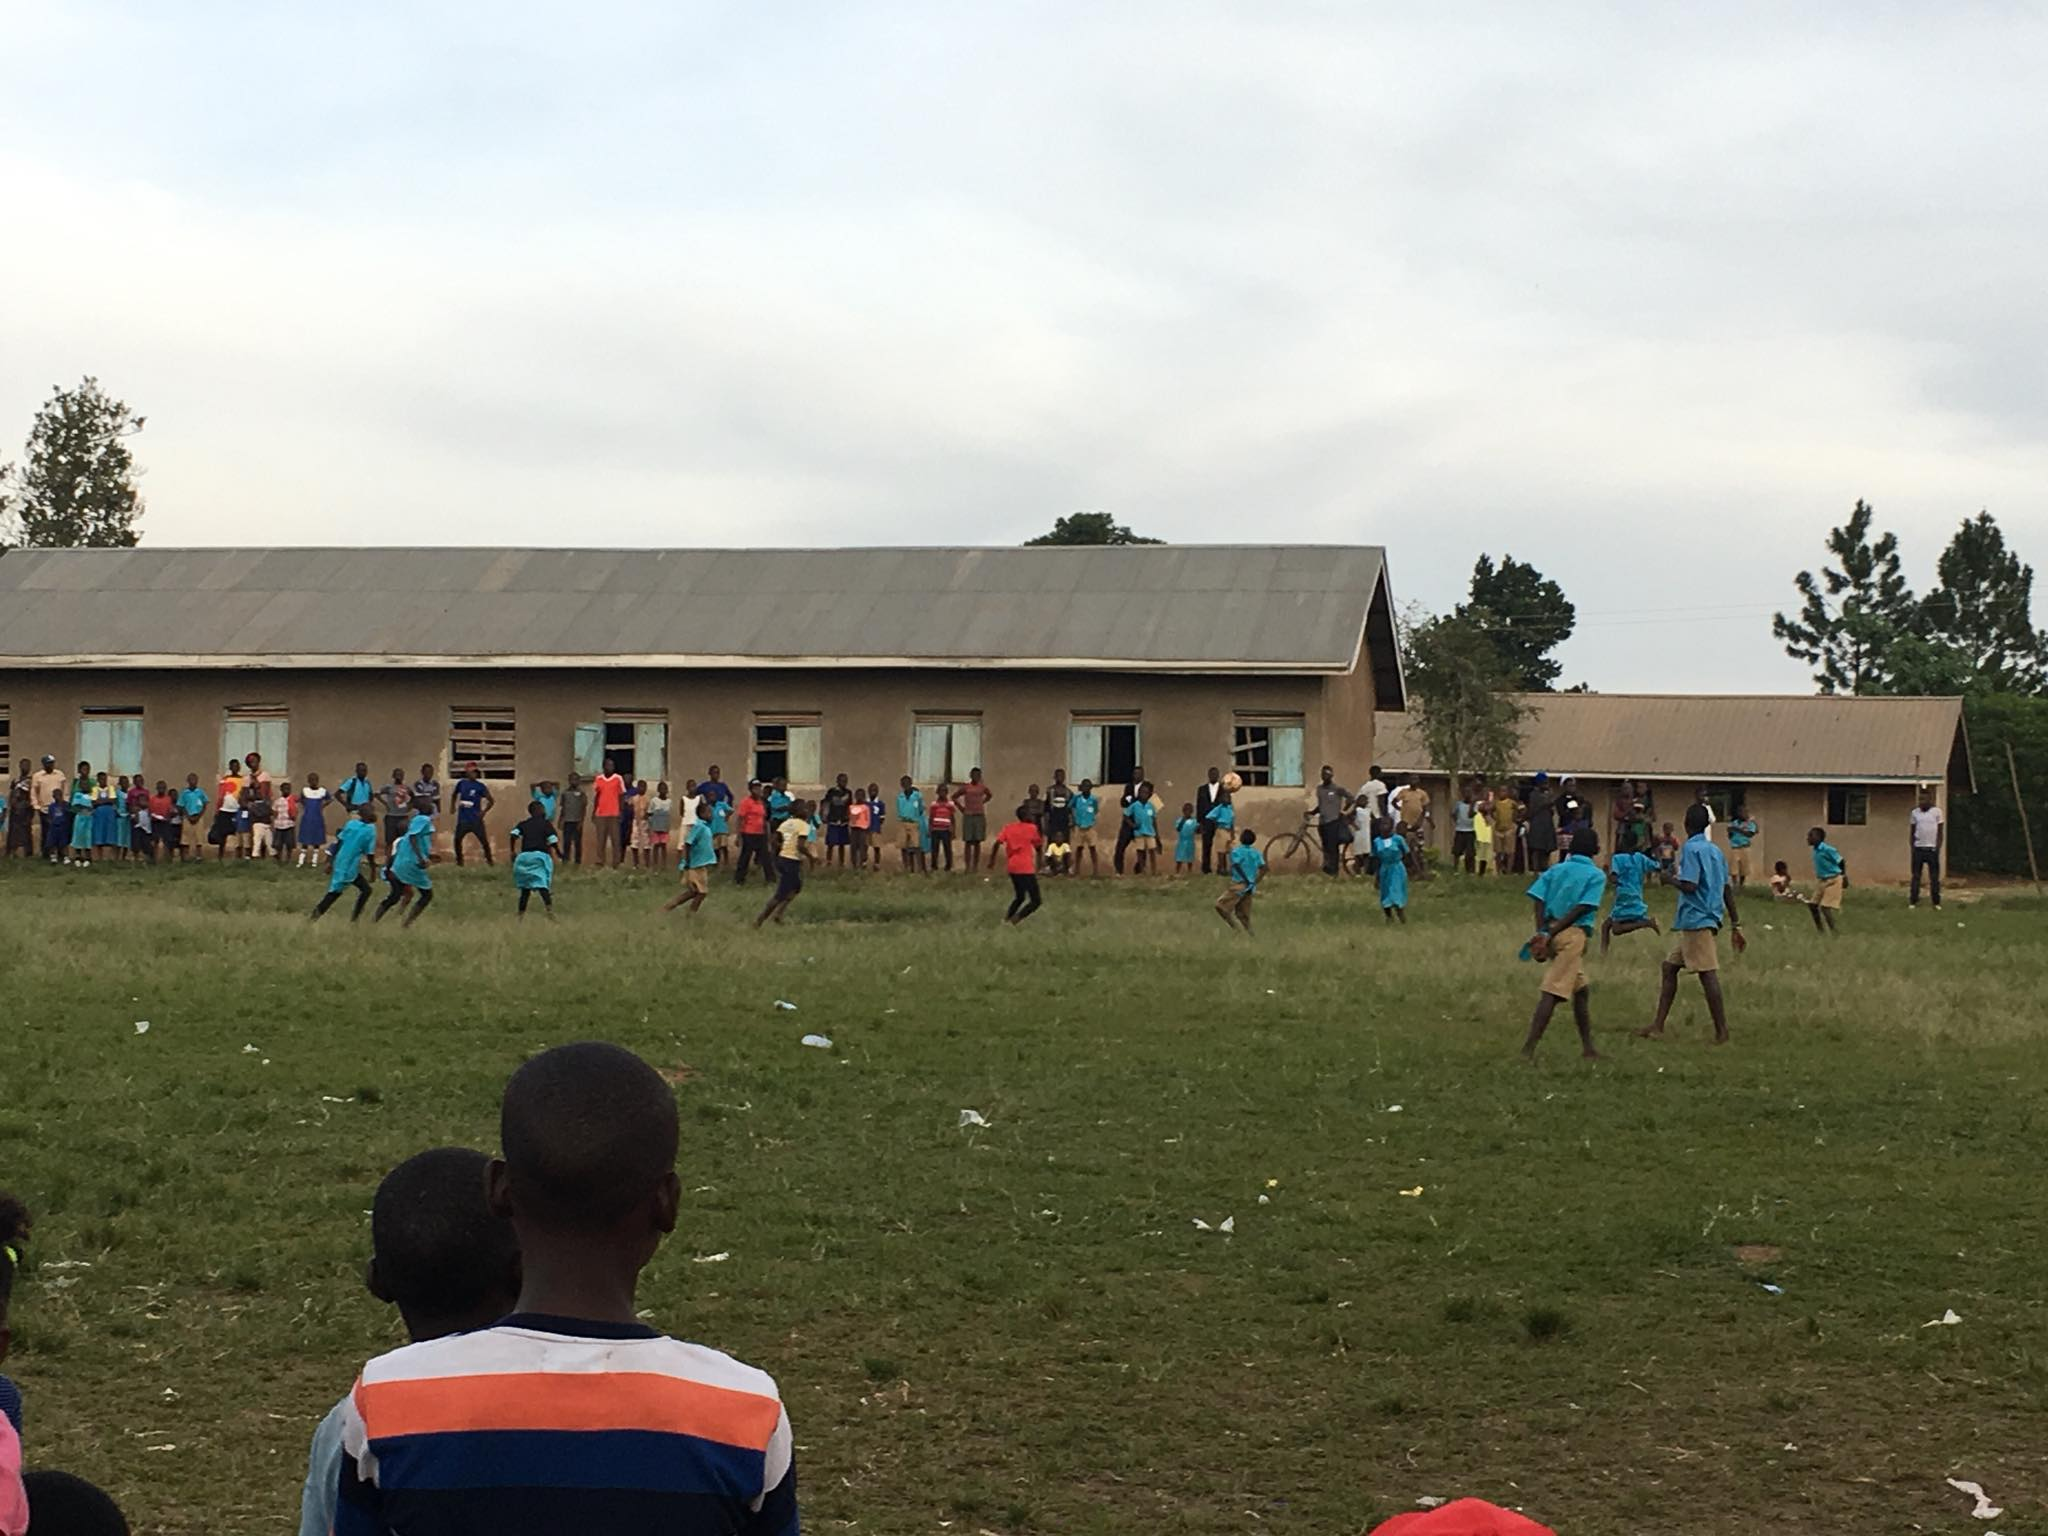 In the boy vs. girl soccer match, the boys had to play with their arms tied behind their backs. The game was a draw!